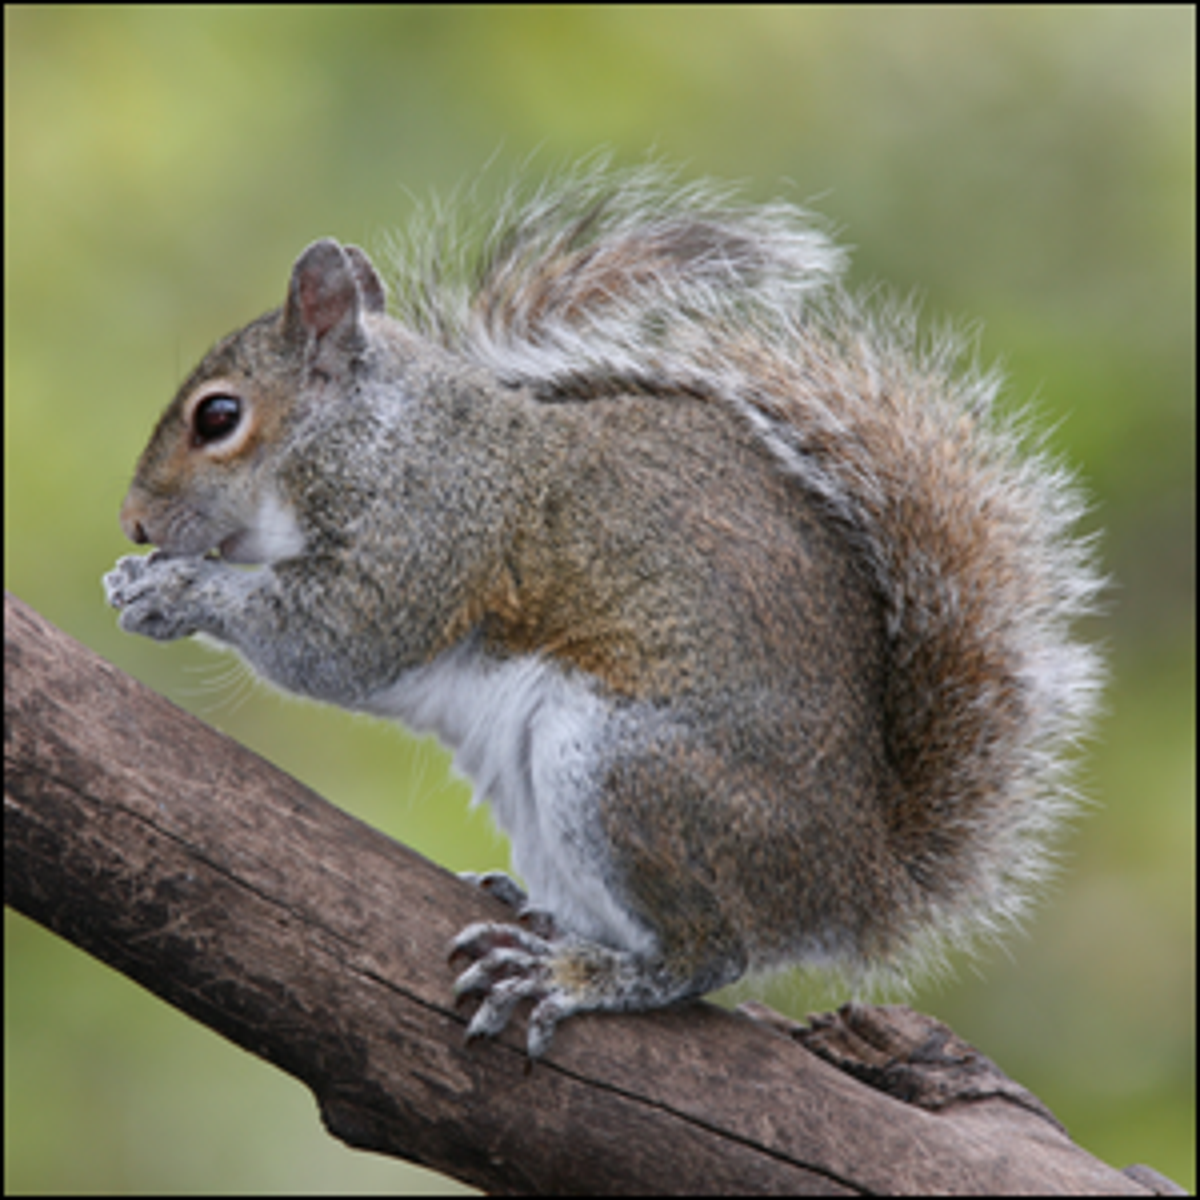 A photo of an Eastern Grey Squirrel eating taken in Florida.